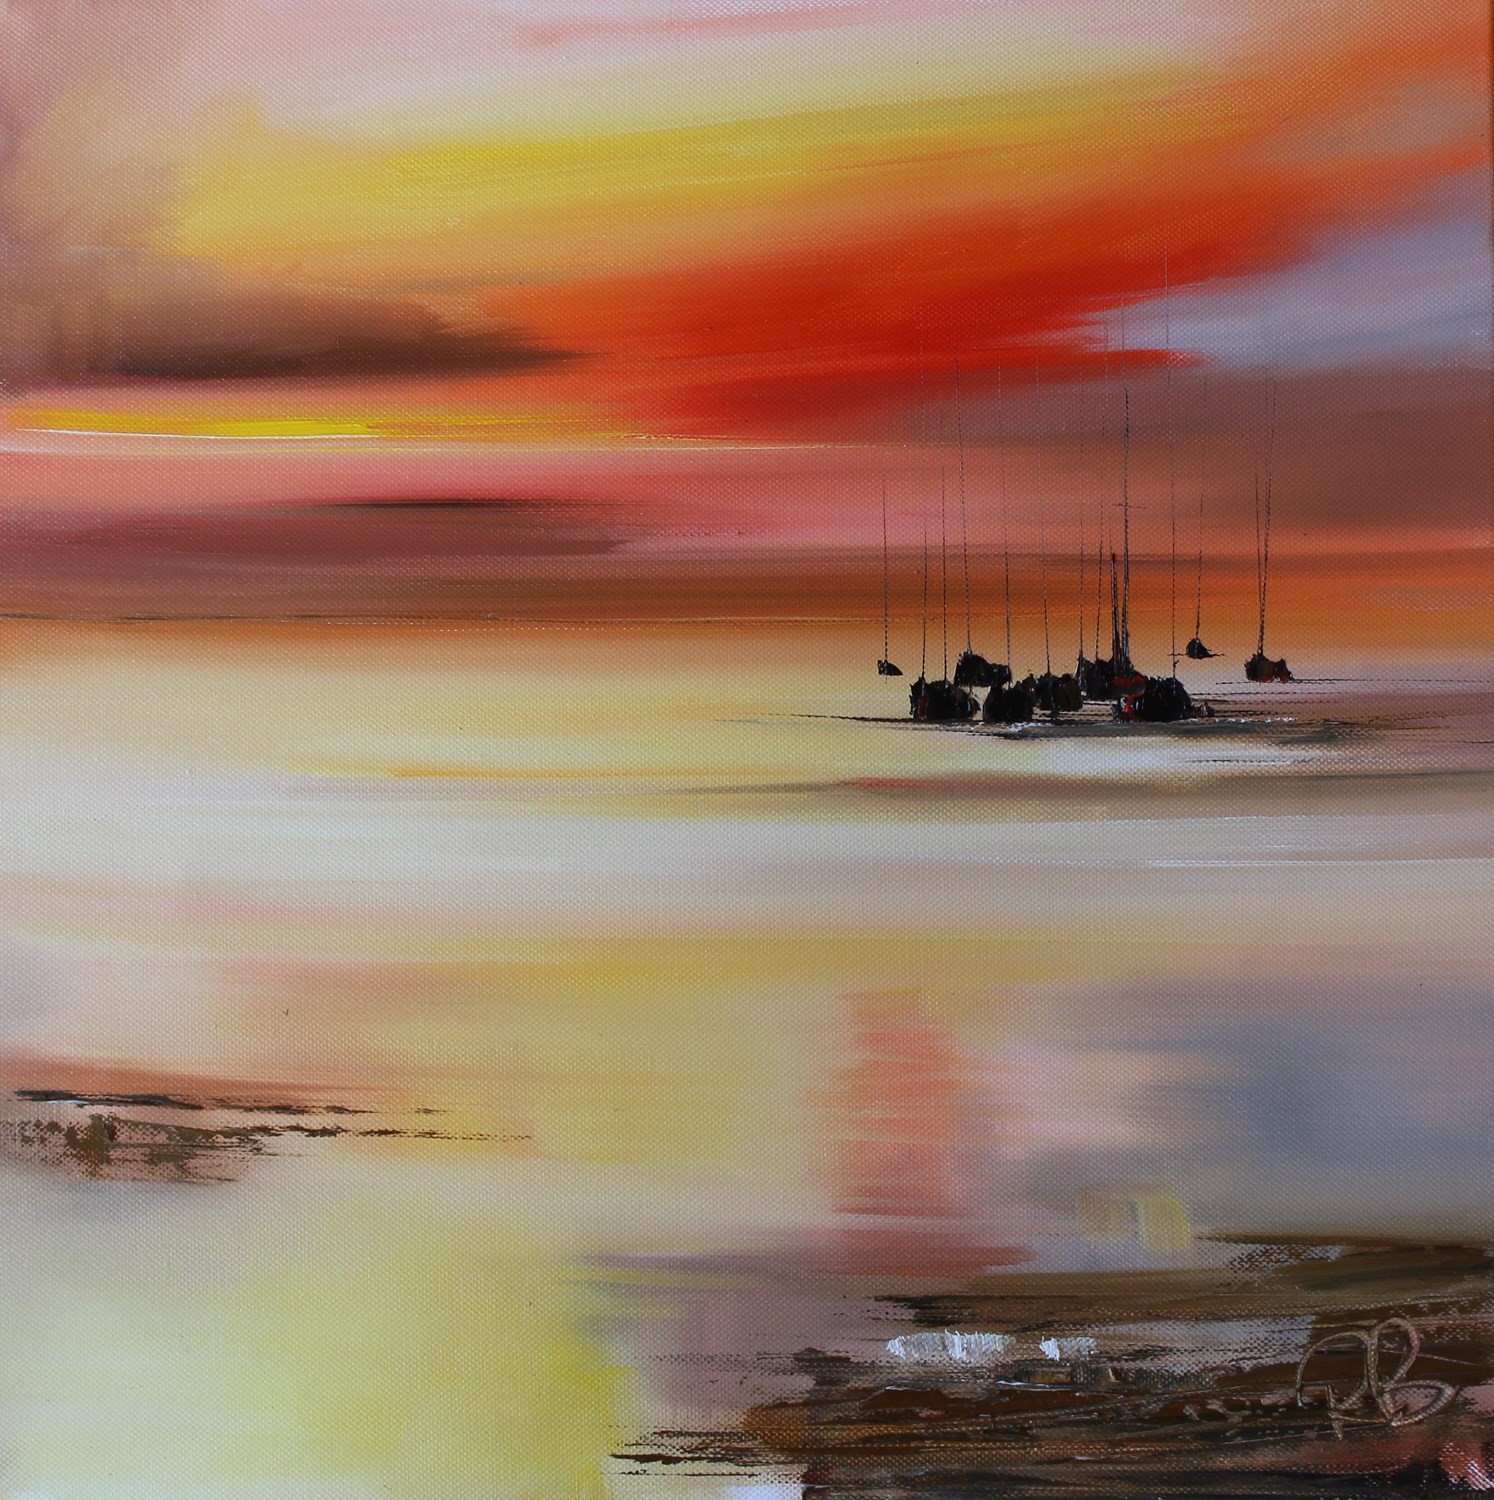 'Calm on the Western Coast' by artist Rosanne Barr